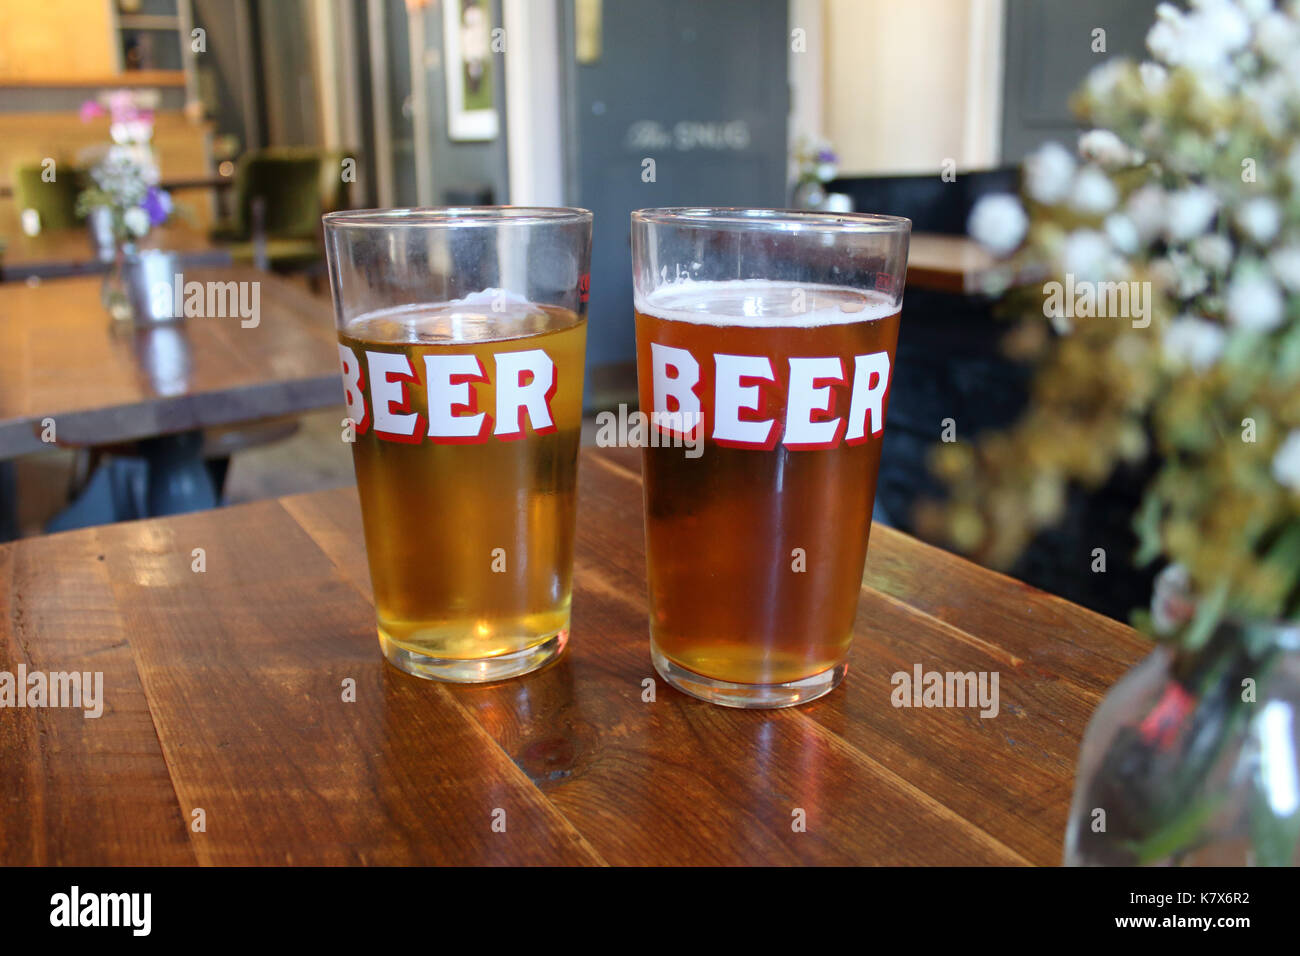 Two pints in 'BEER' glasses in a pub. Shallow focus on glasses. London, UK. - Stock Image